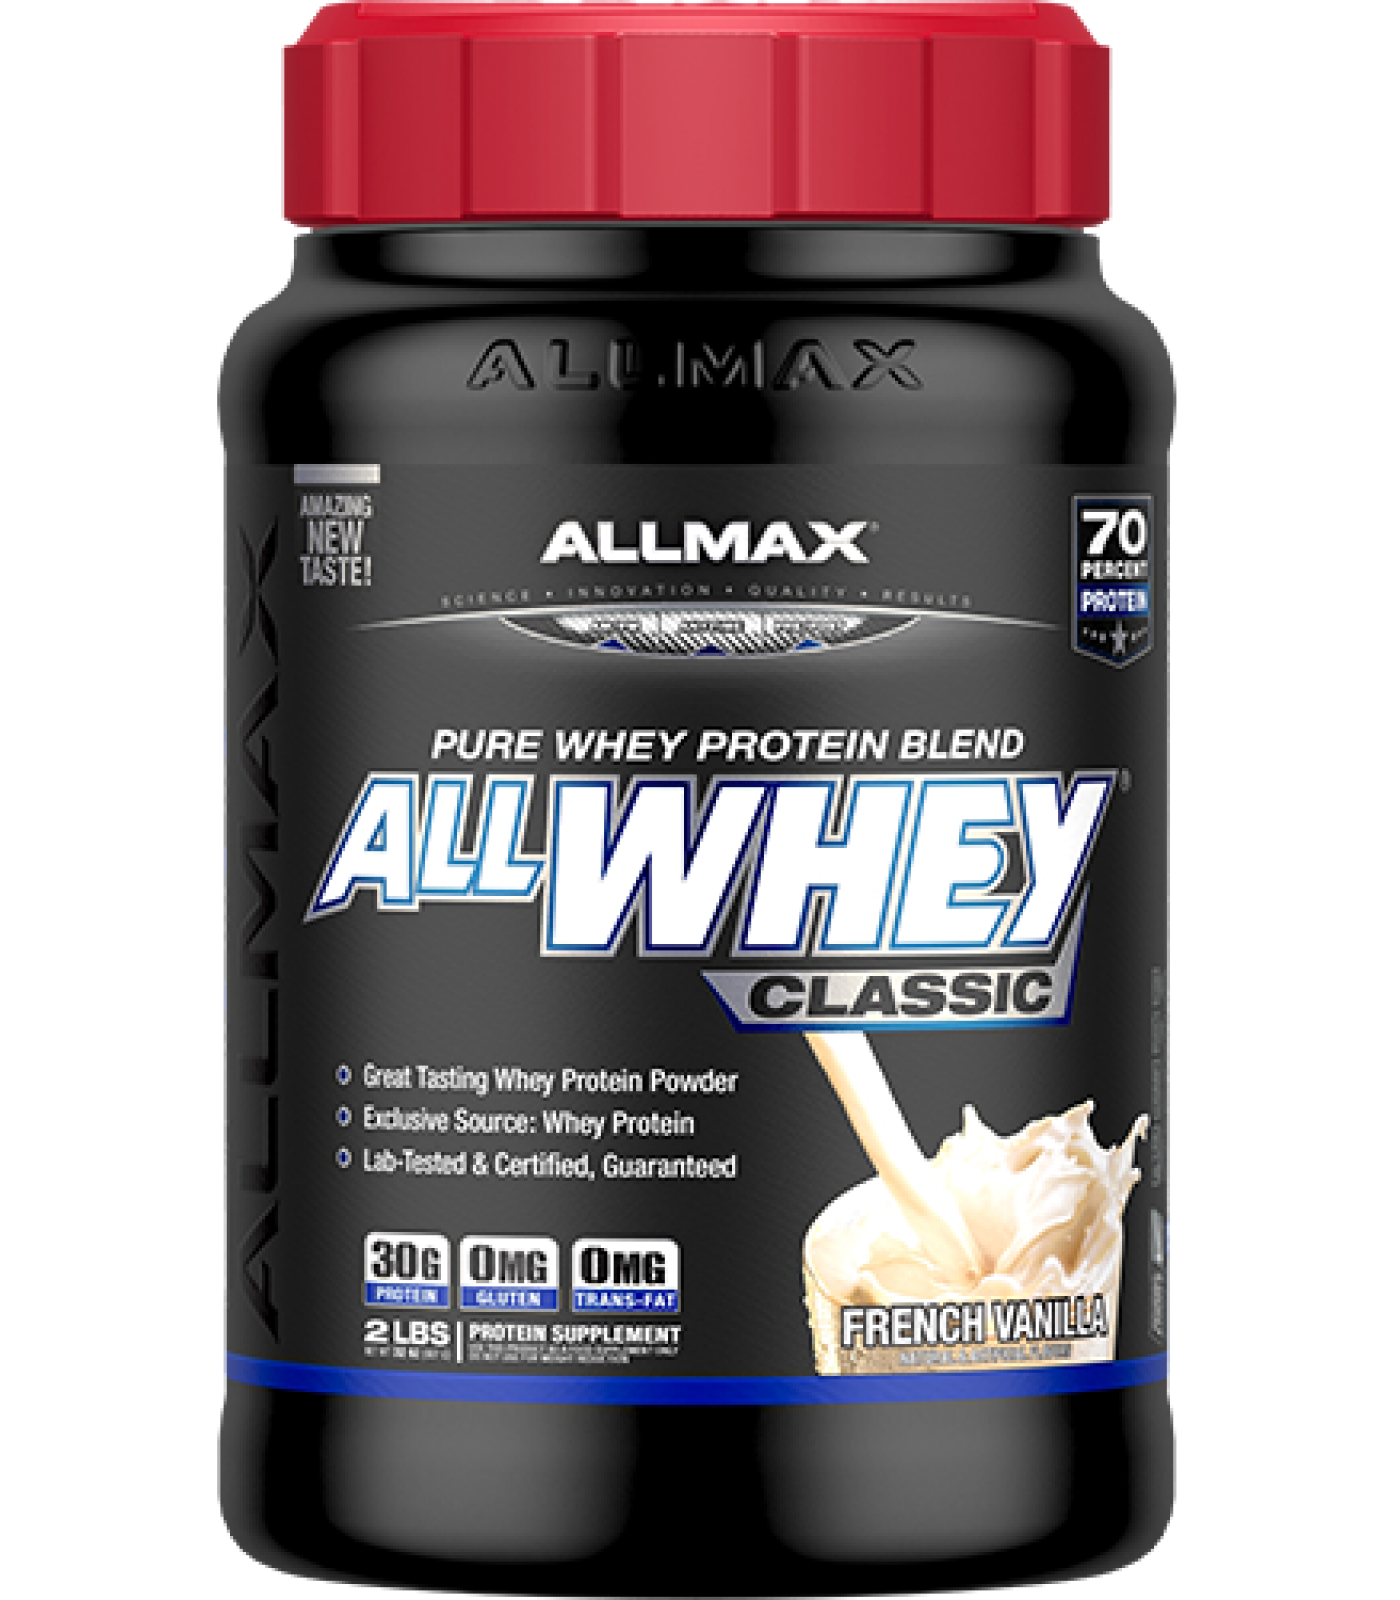 AllMax - All Whey / 2lb.